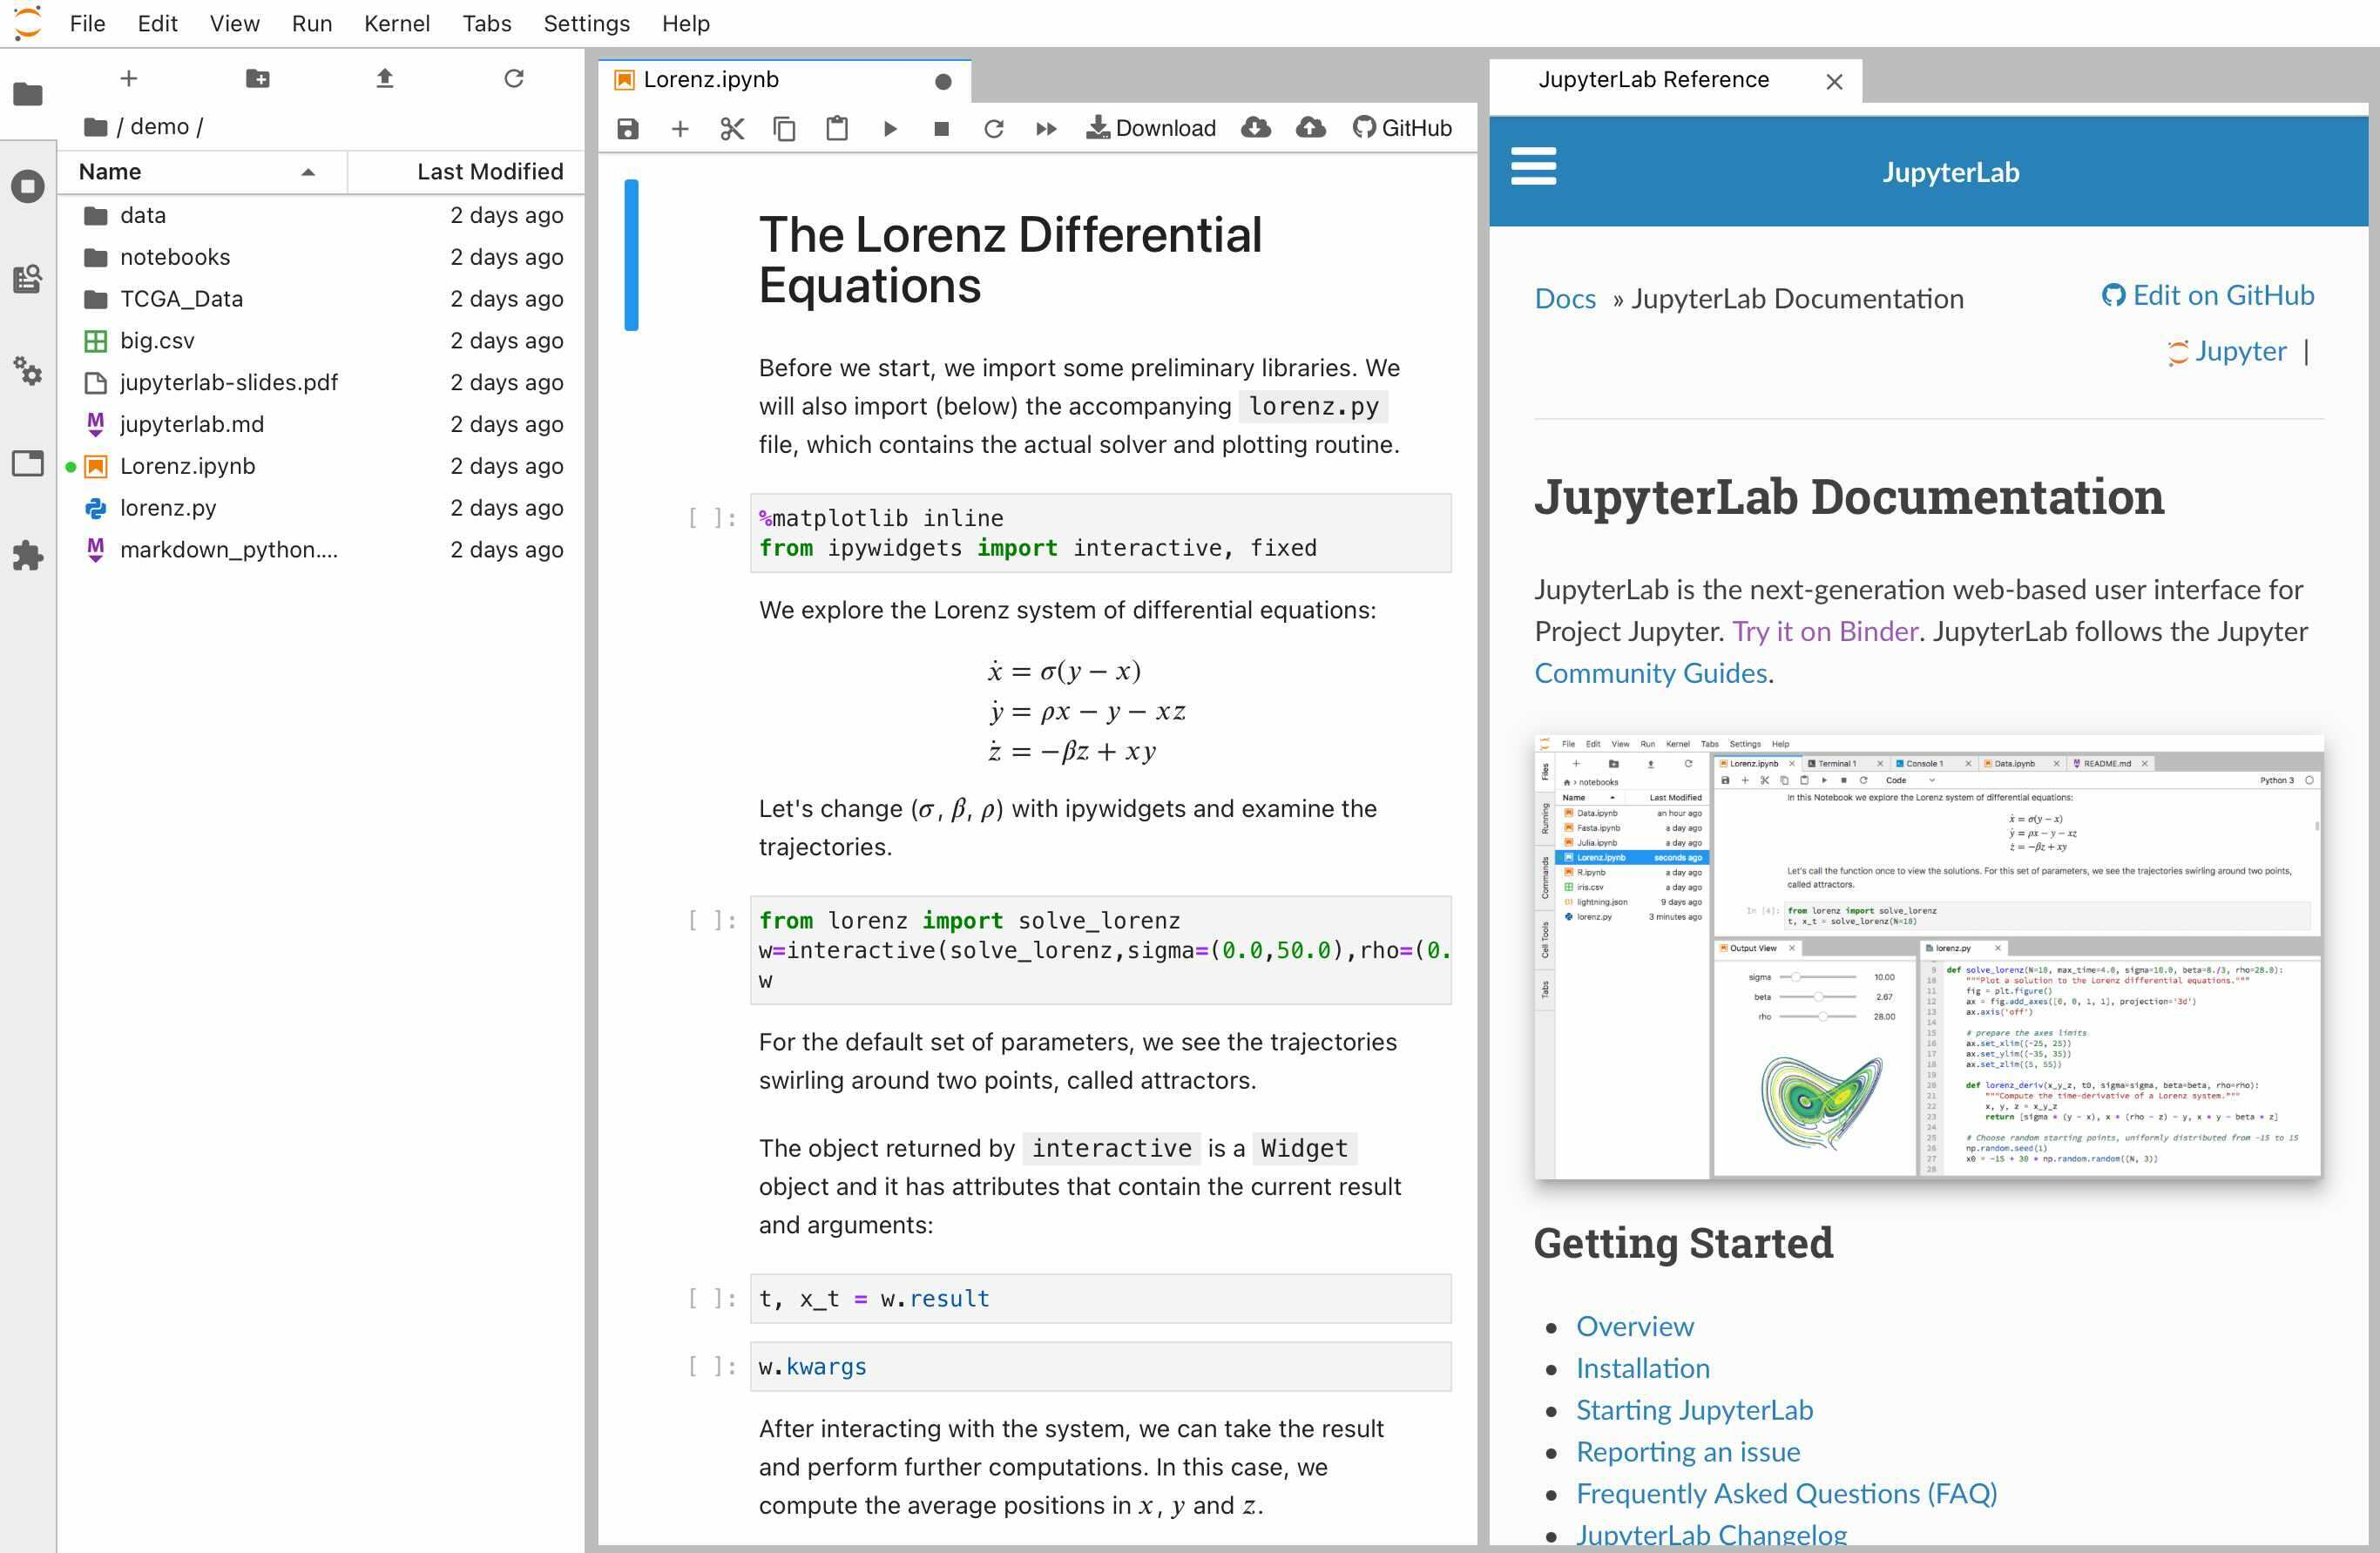 A Jupyter notebook